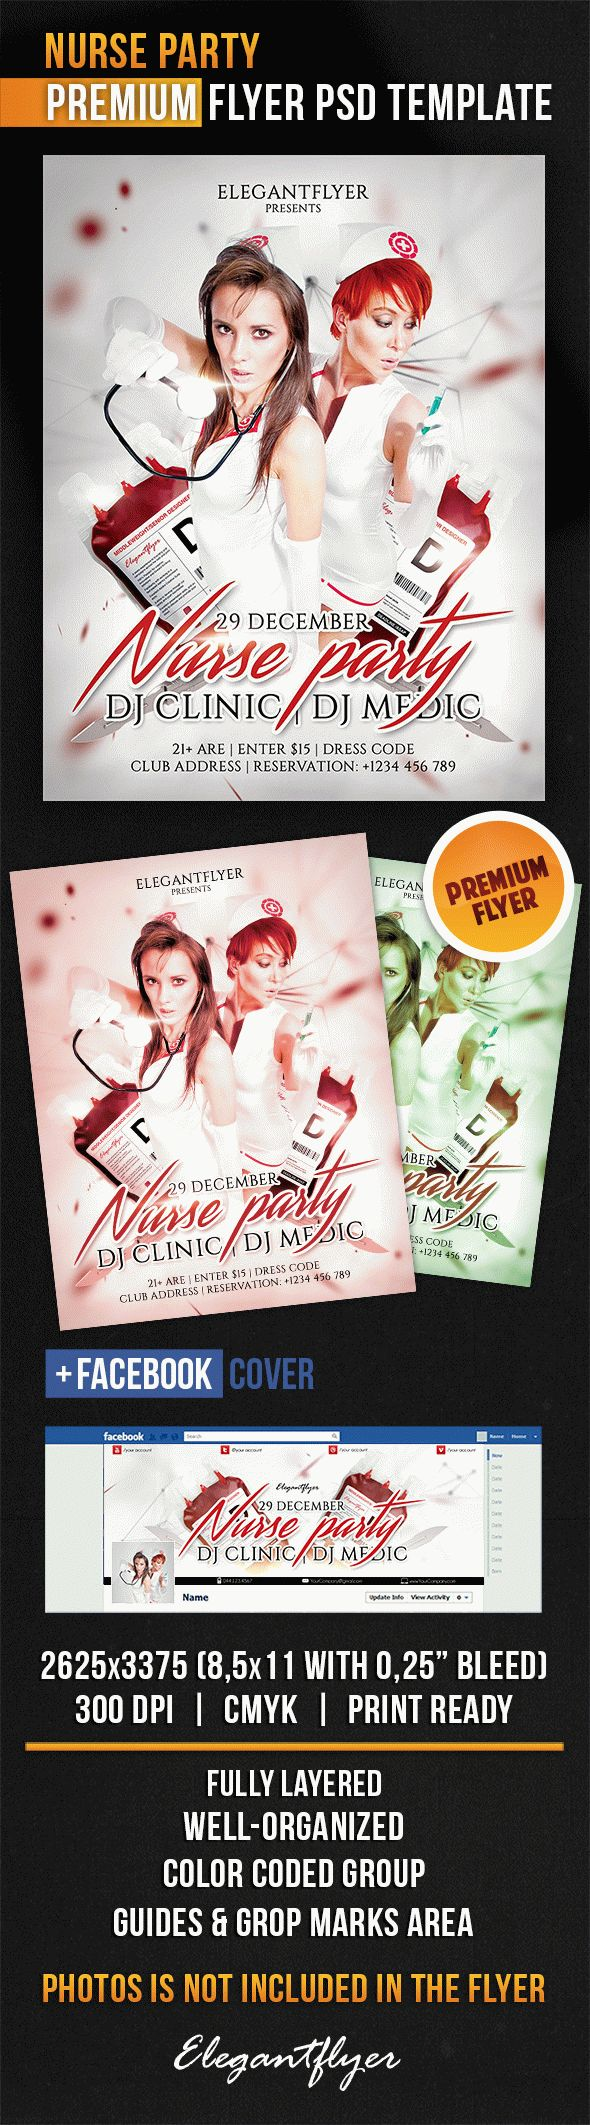 Nurse party flyer psd template by elegantflyer for Nurses week flyer templates